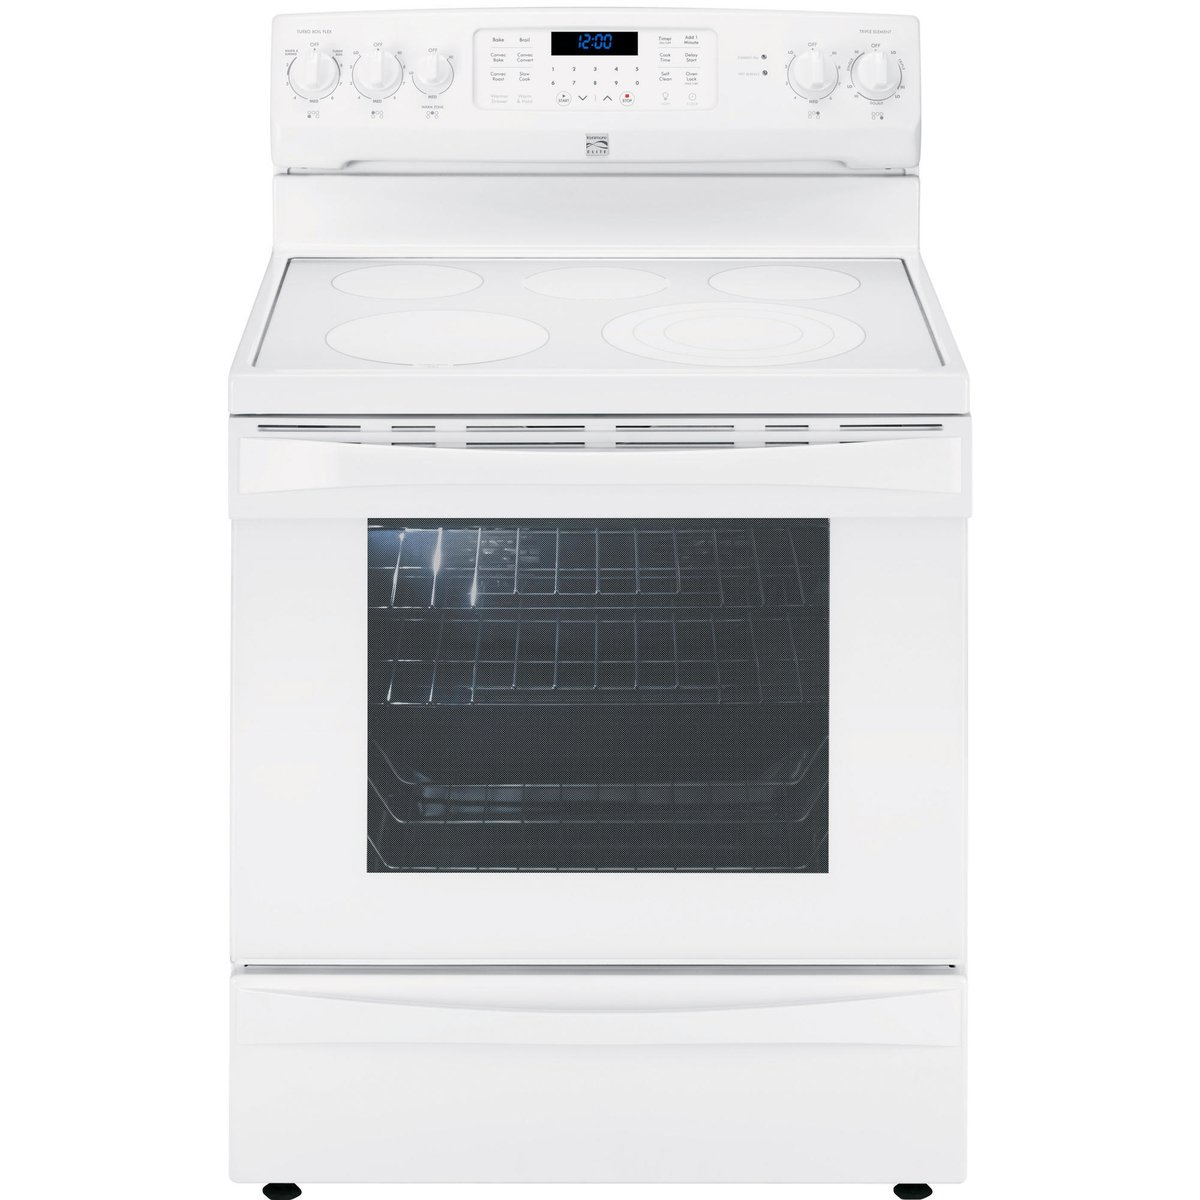 Amazon.com: Kenmore Elite 95052 6.1 cu. ft. Electric Range in White,  includes delivery and hookup: Appliances